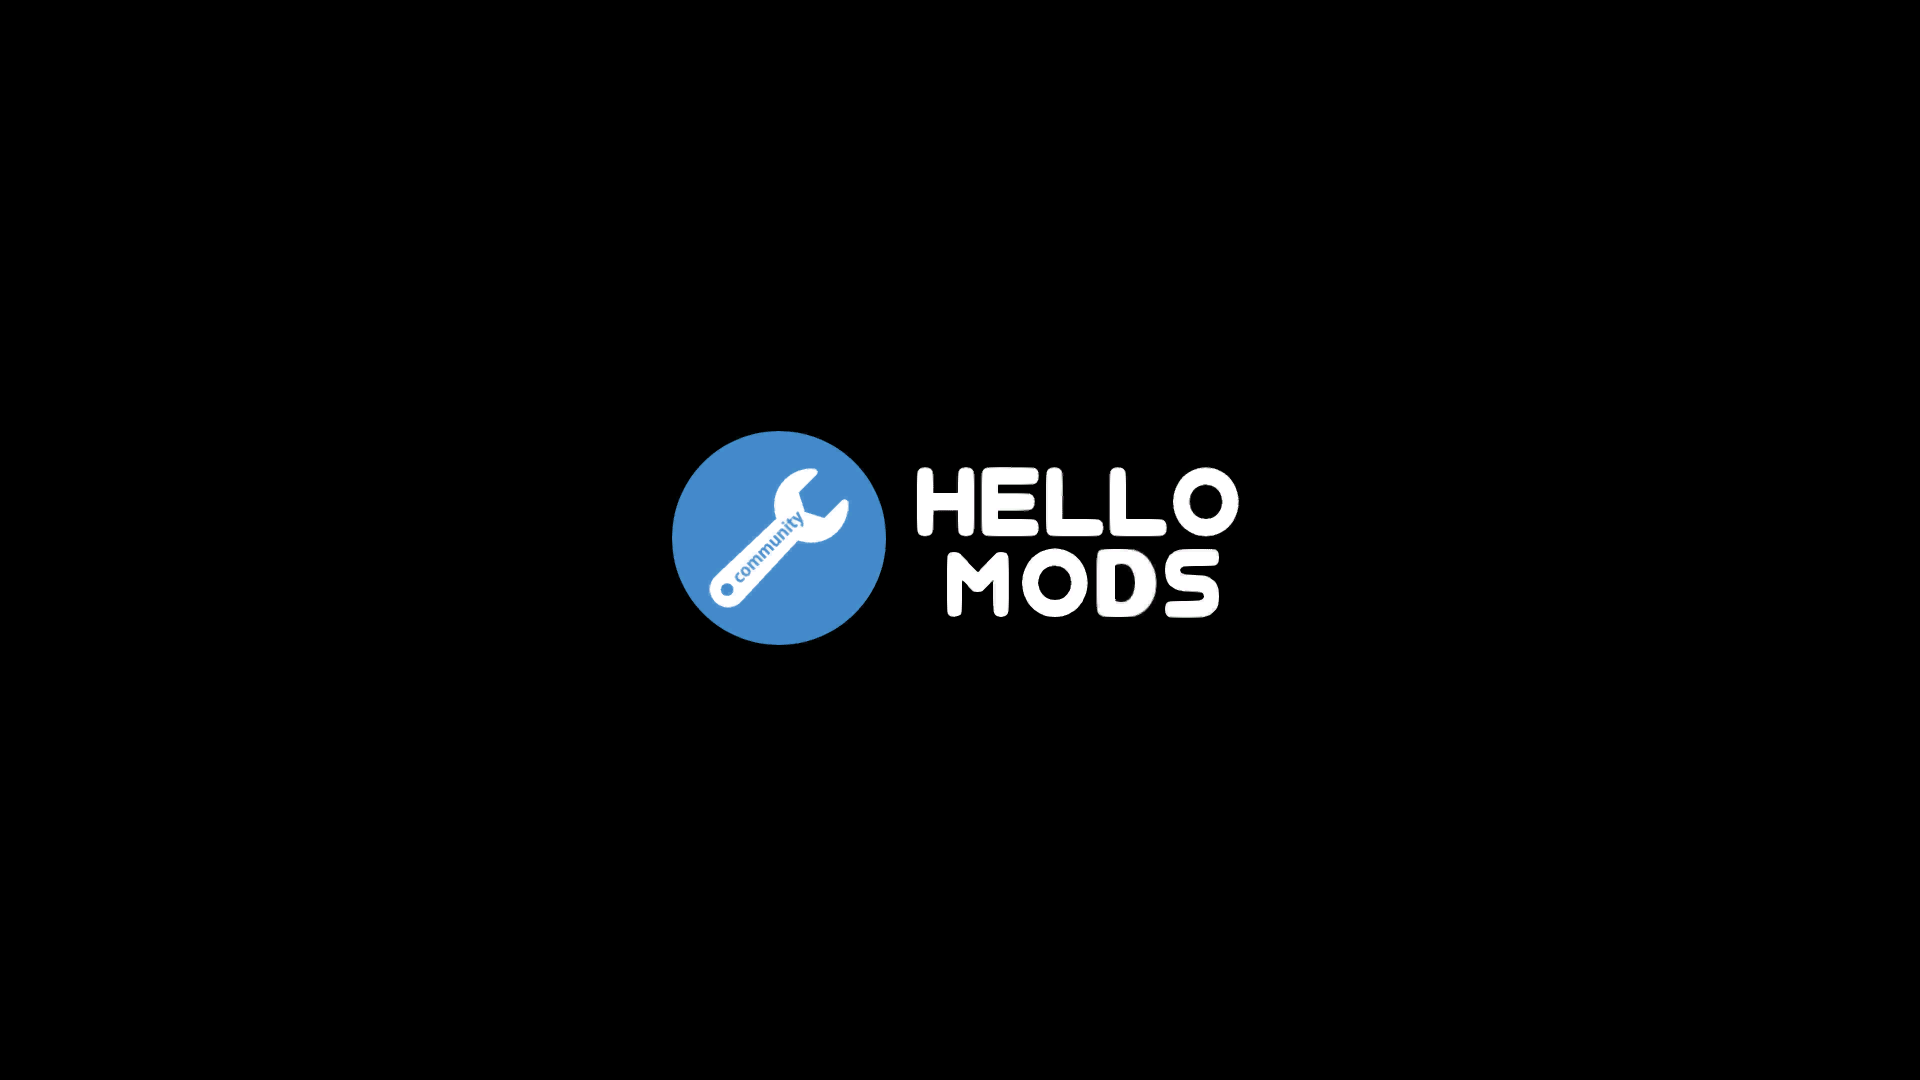 Hello Mods – A community title to replace 'Hello Games' in the start menu